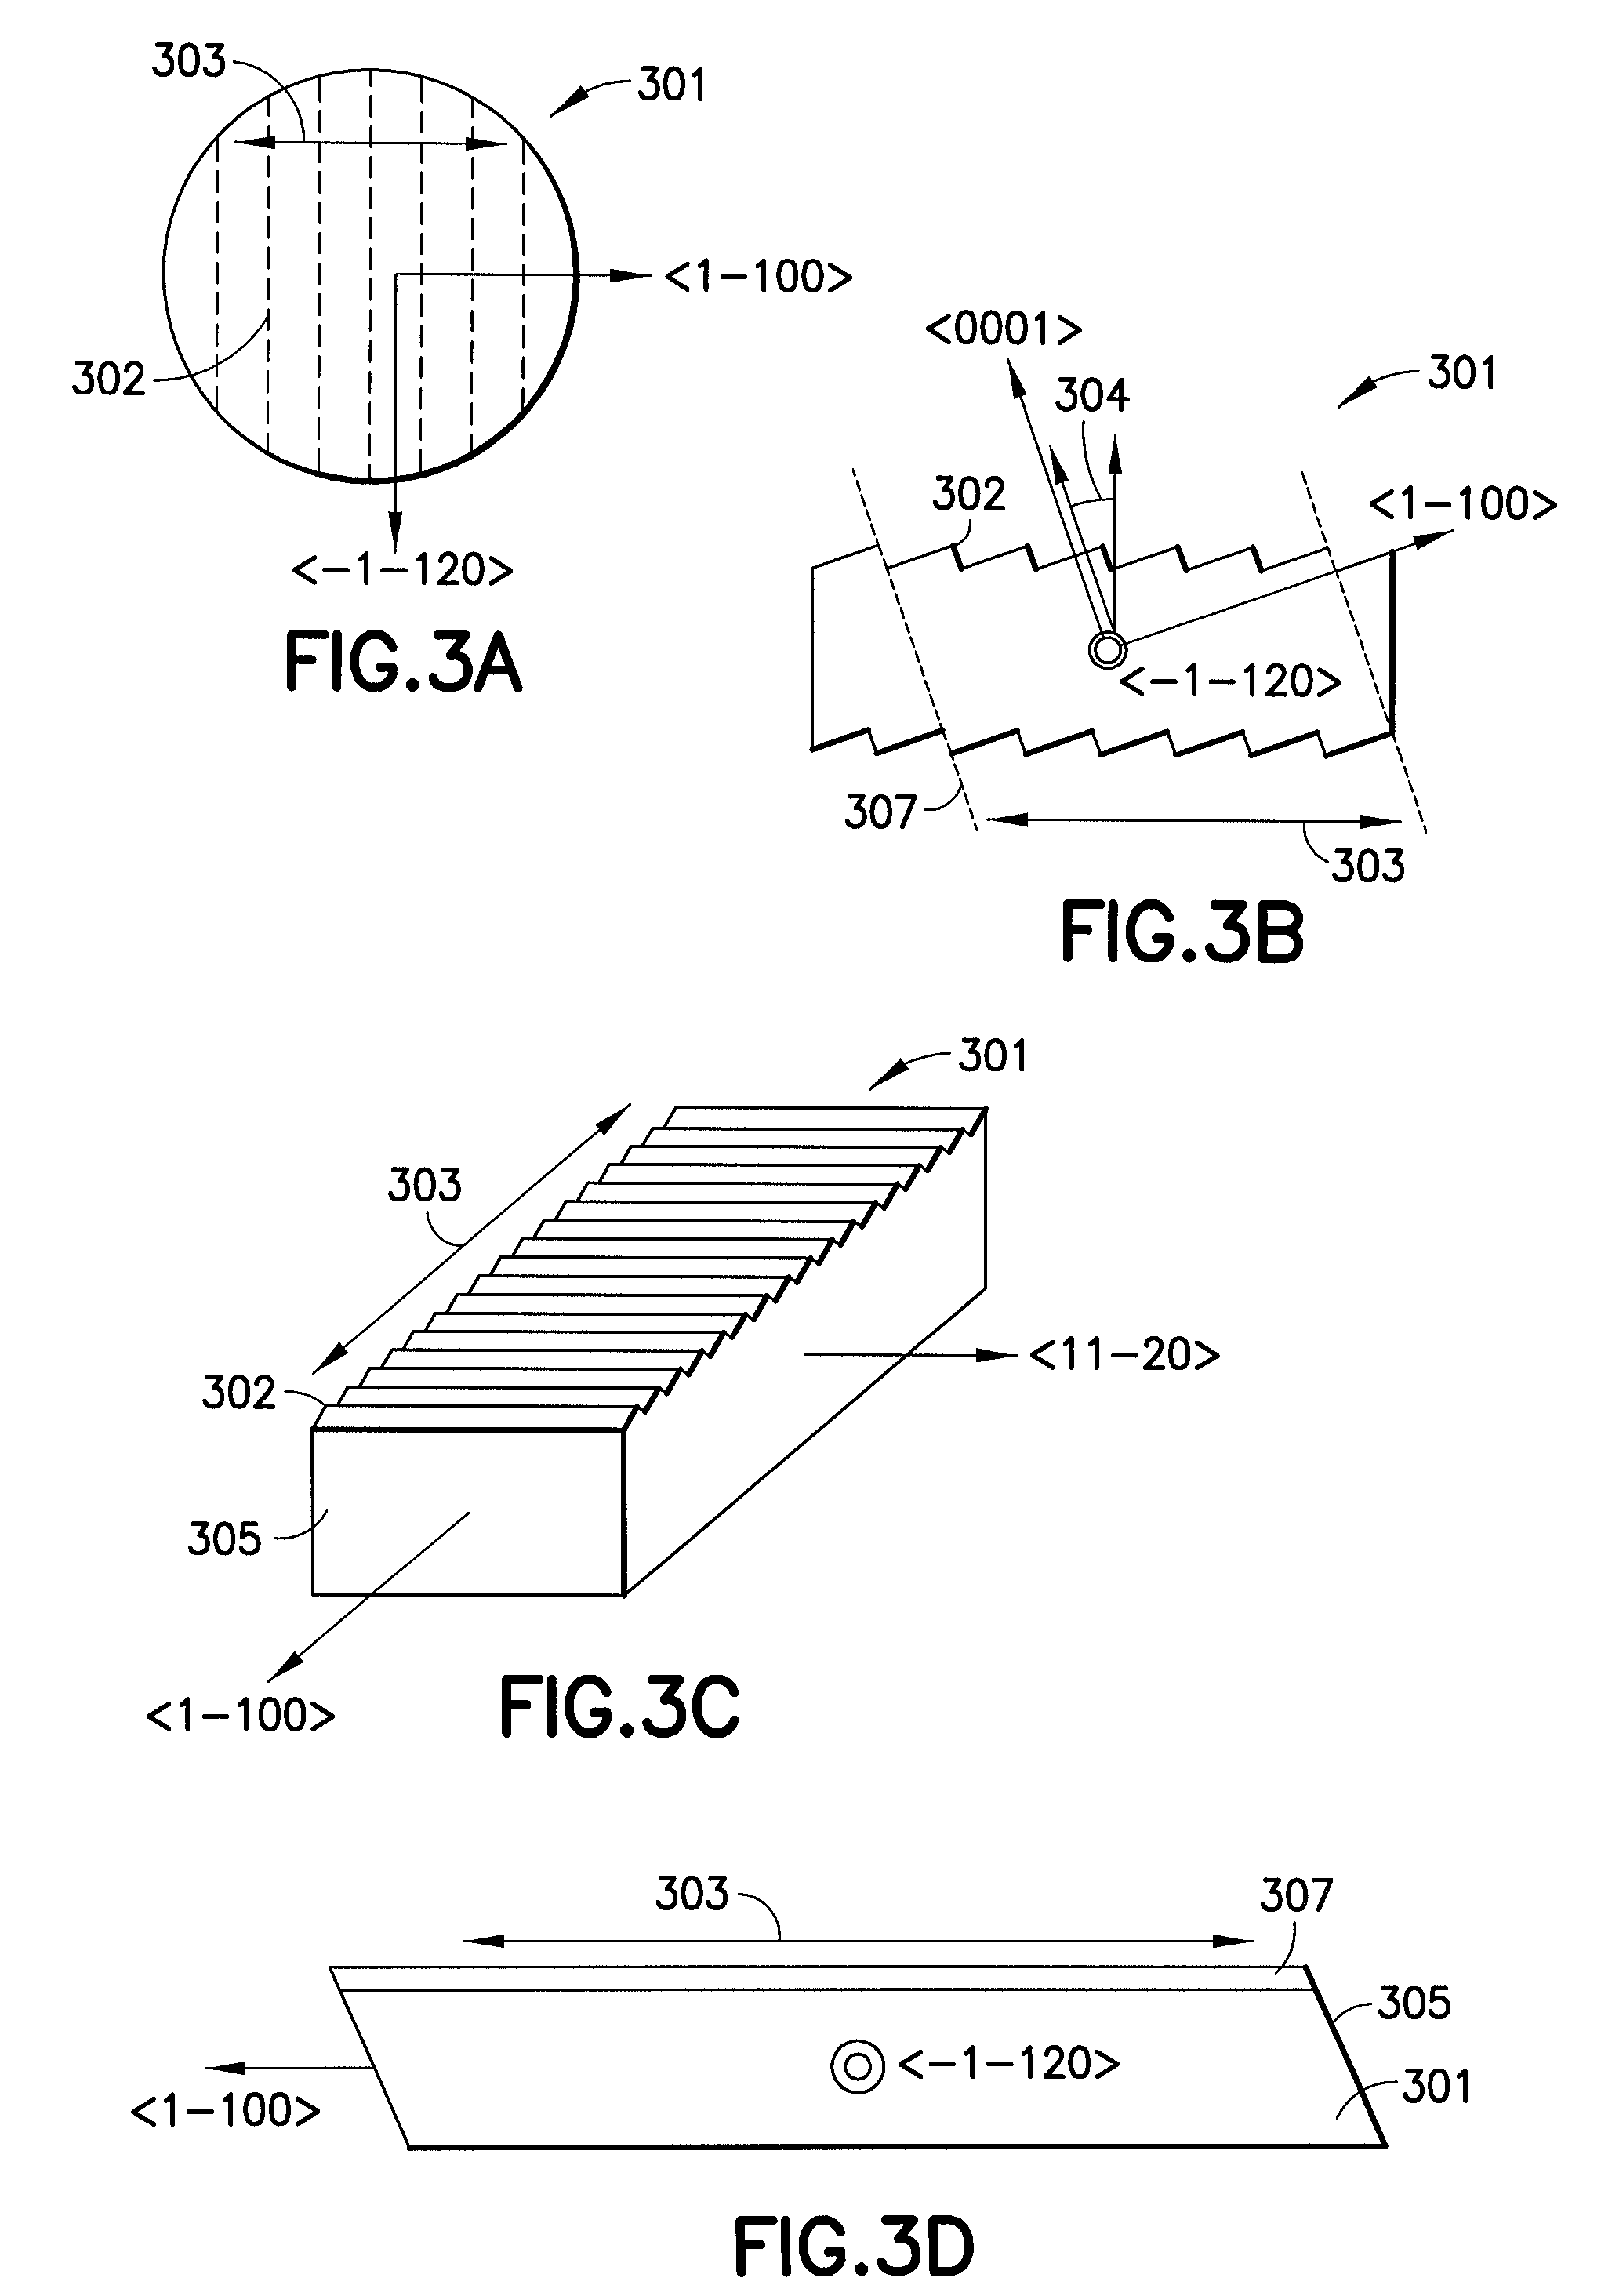 Diode Polarity Direction